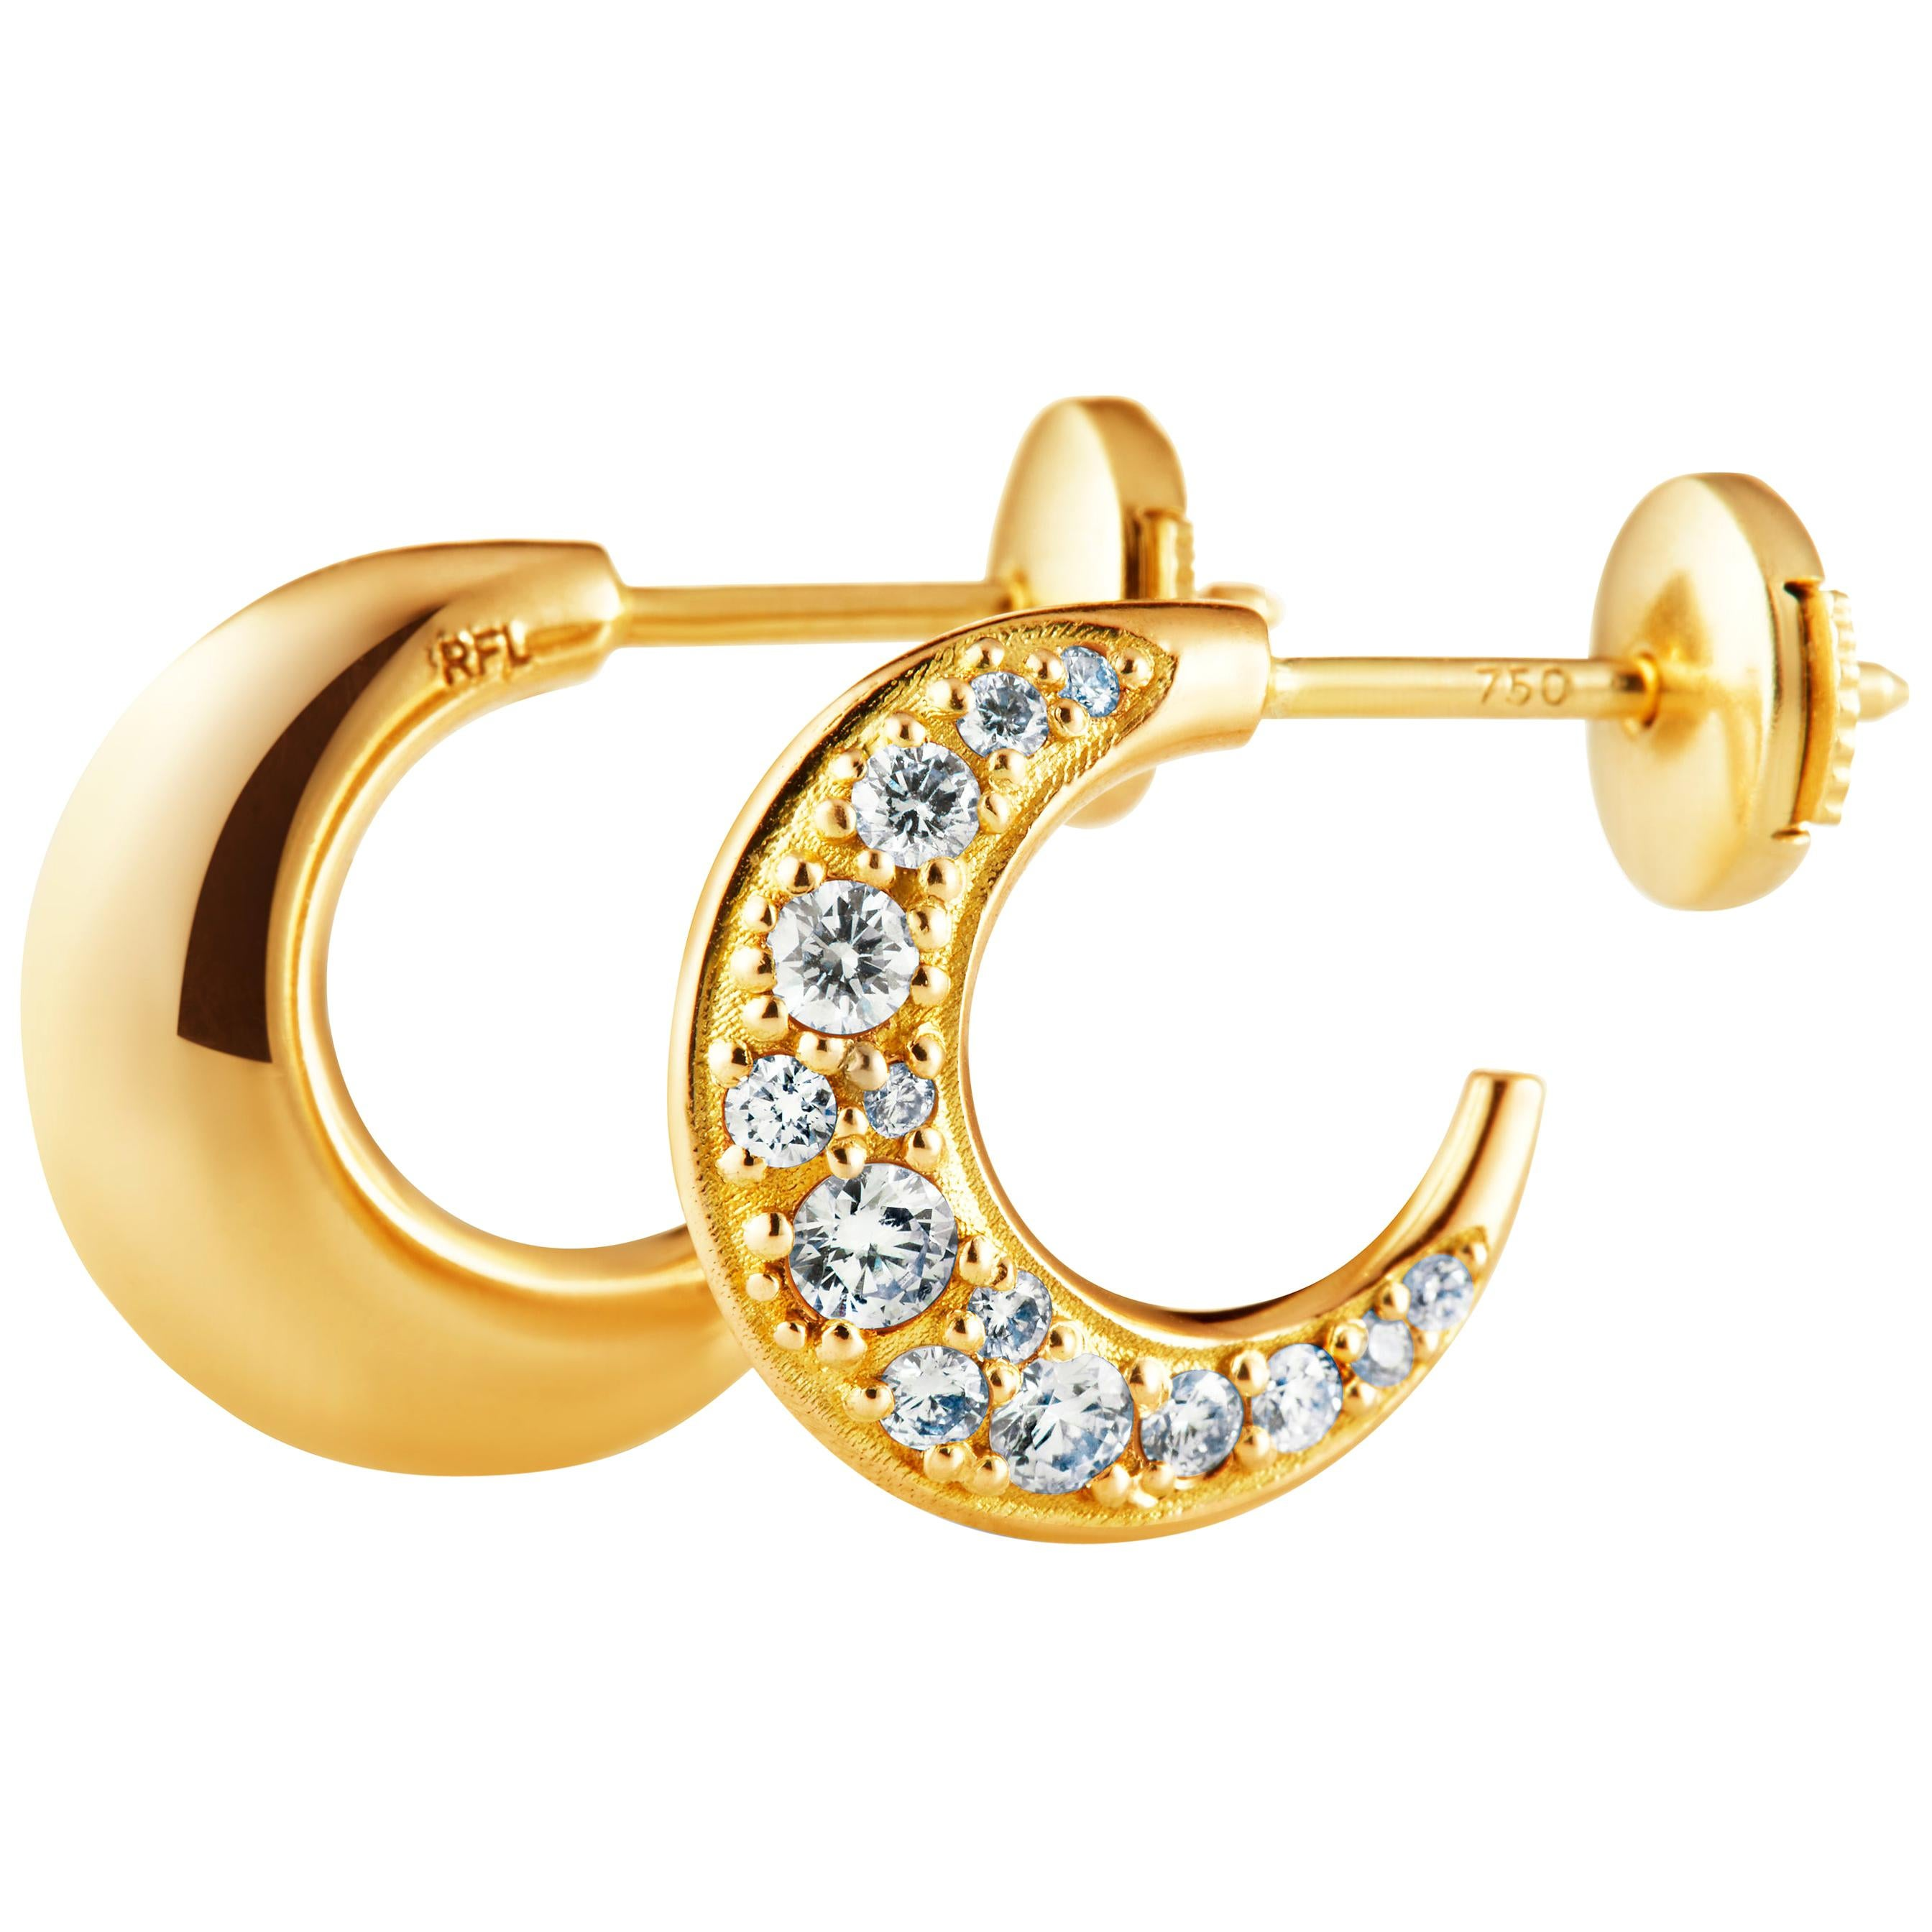 Hoop Earrings Size S 18 Karat Gold with Traceable Diamonds by Rocks for Life